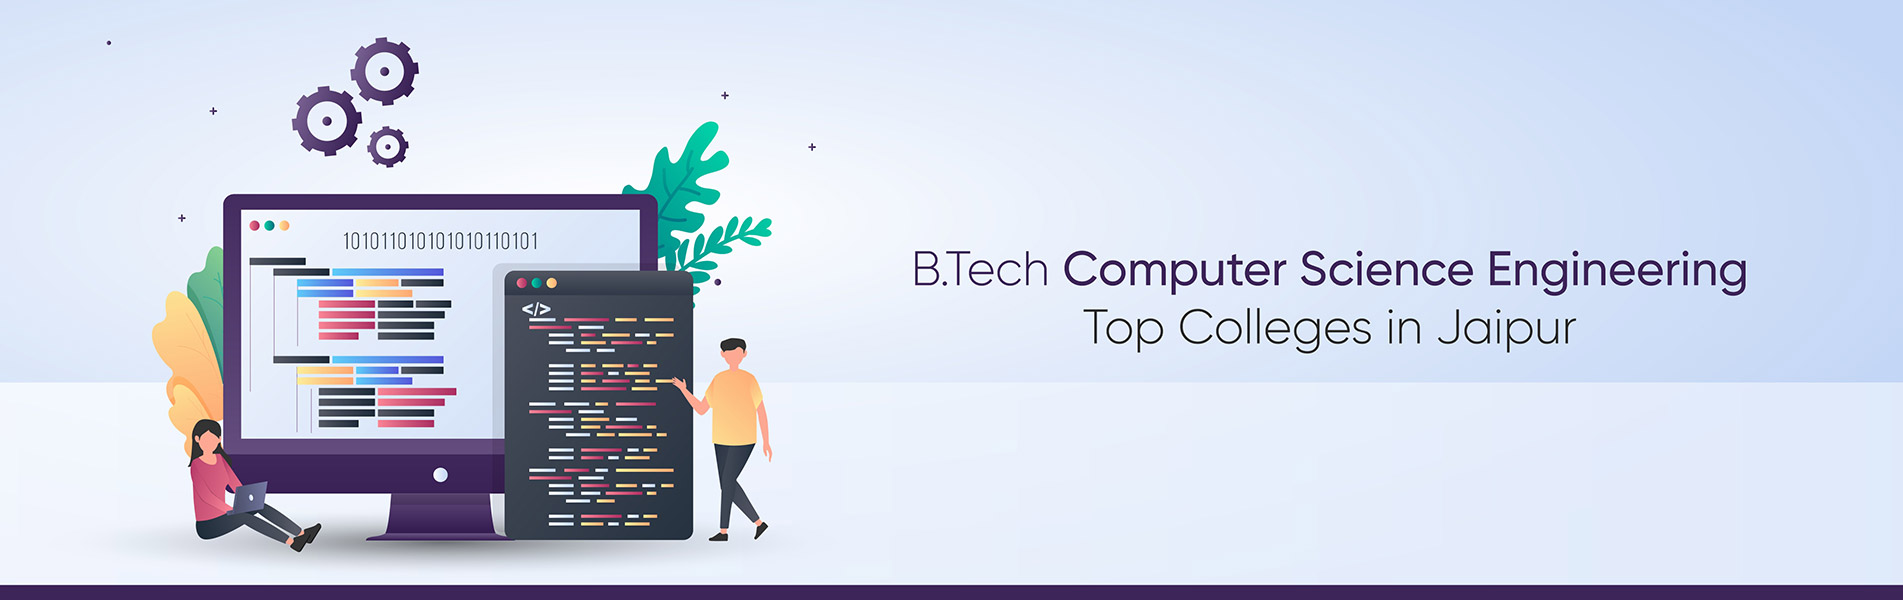 BTech Computer Science Engineering, Top Colleges in Jaipur